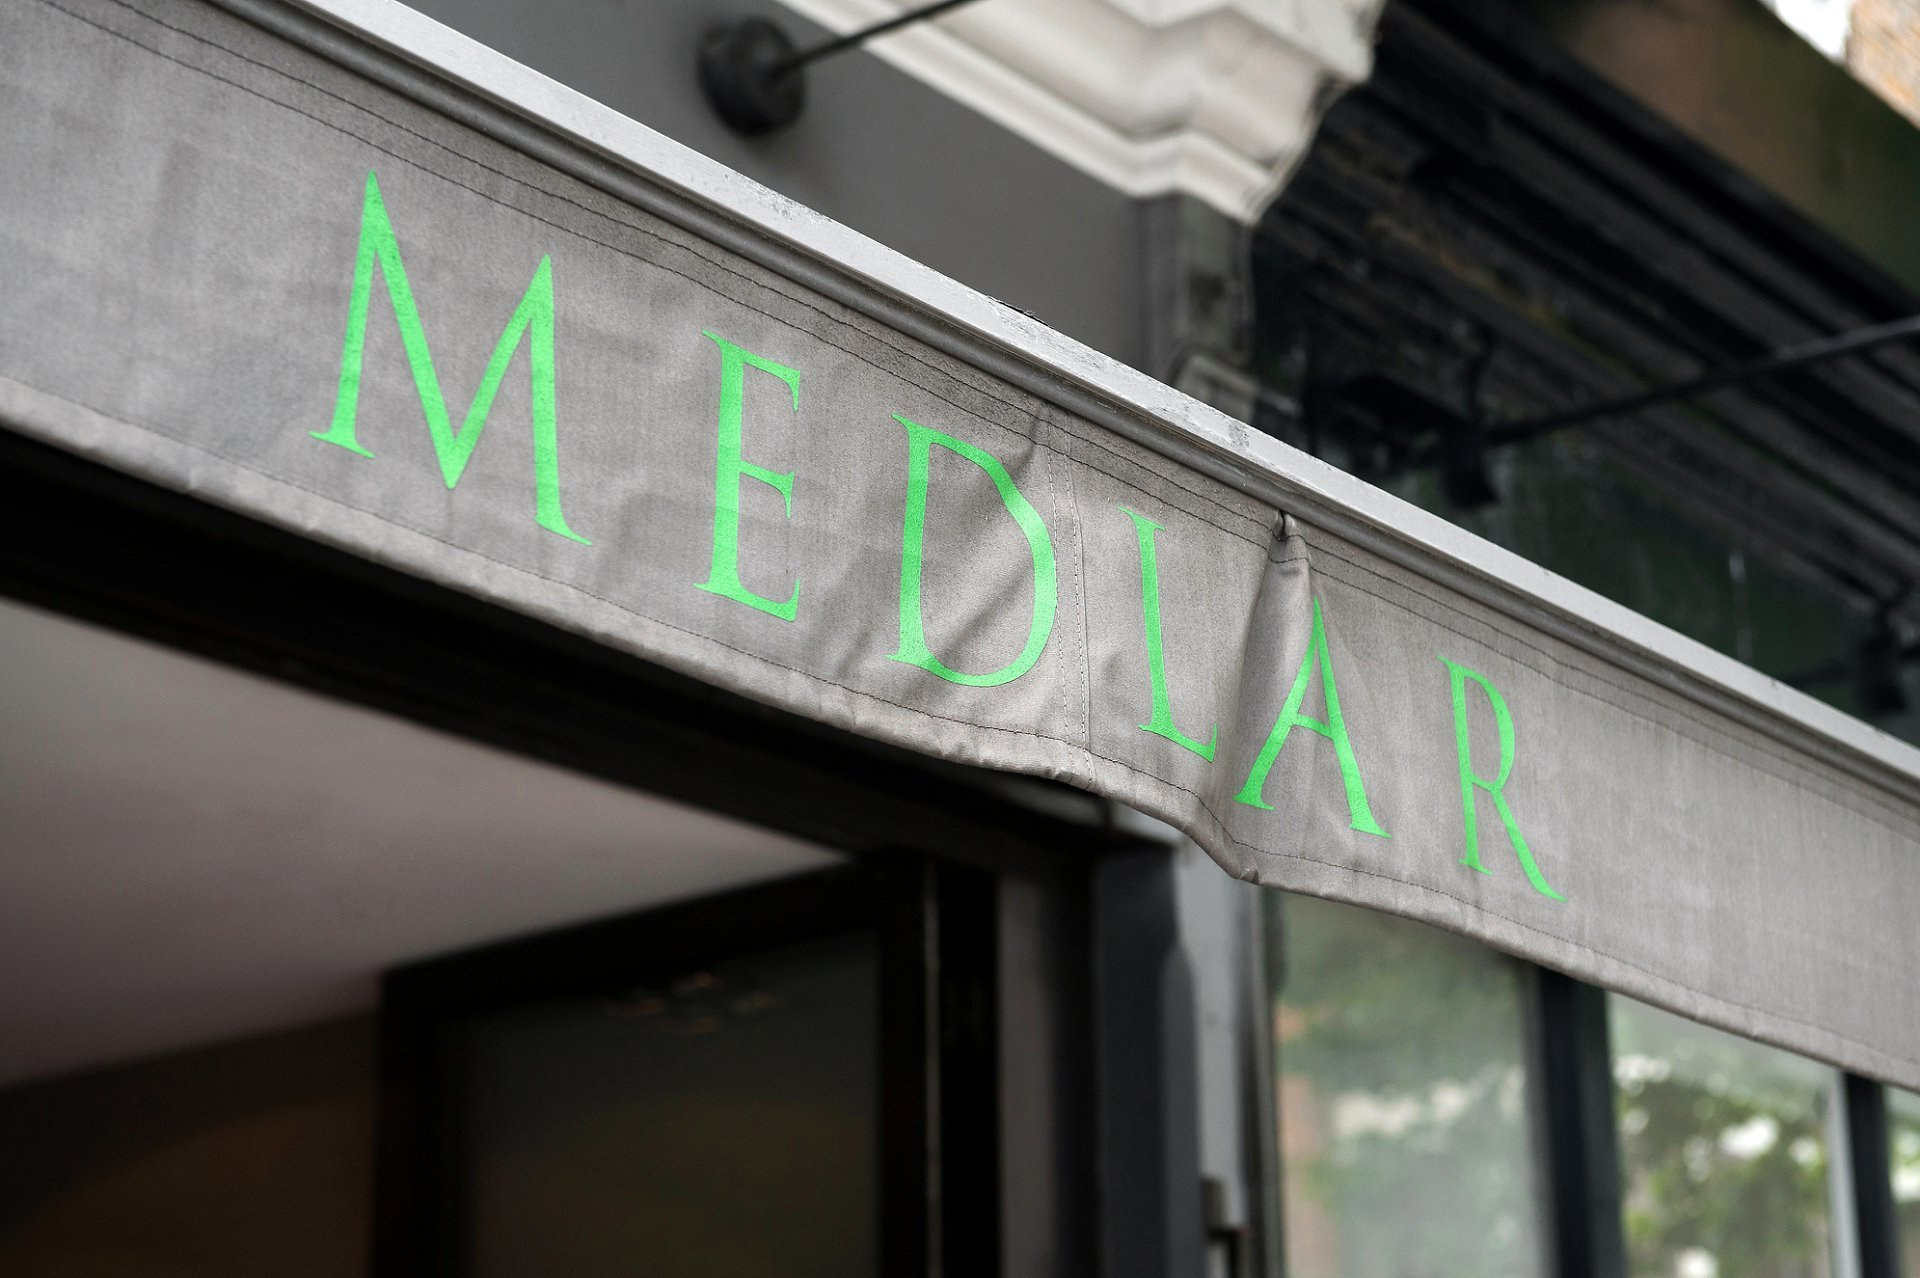 Chelsea private dining room on the King's Road for small wedding receptions, corporate dinners, wine flights and tastings, anniversaries, birthday parties and christenings. Medlar restaurant has rave reviews and very loyal customers